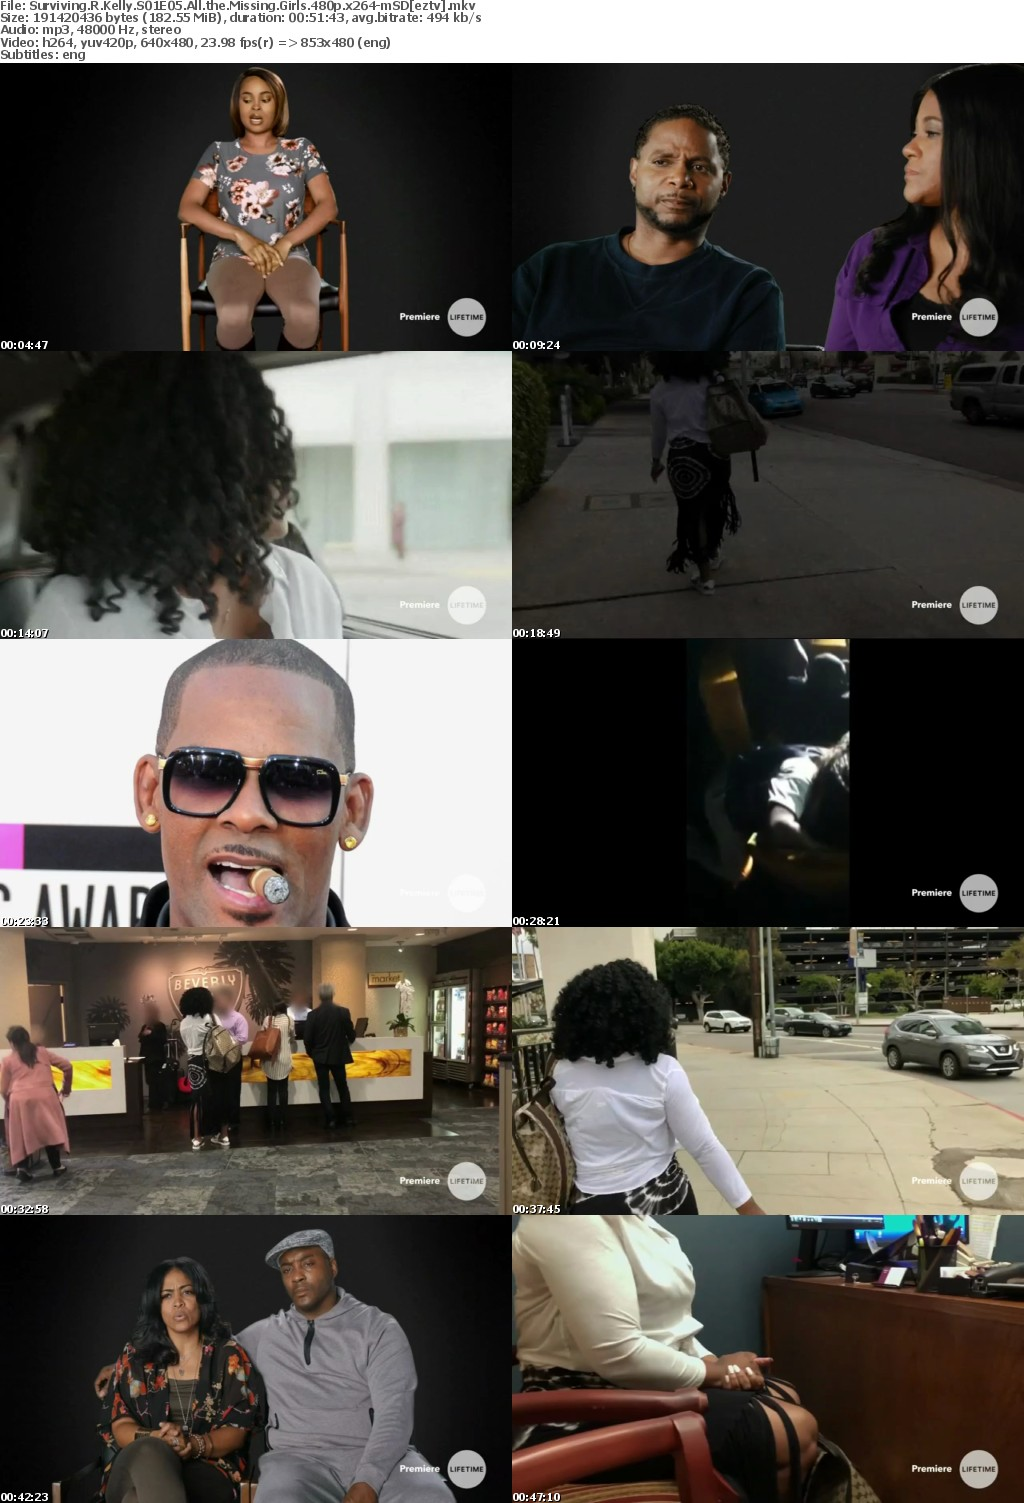 Surviving R Kelly S01E05 All the Missing Girls 480p x264-mSD